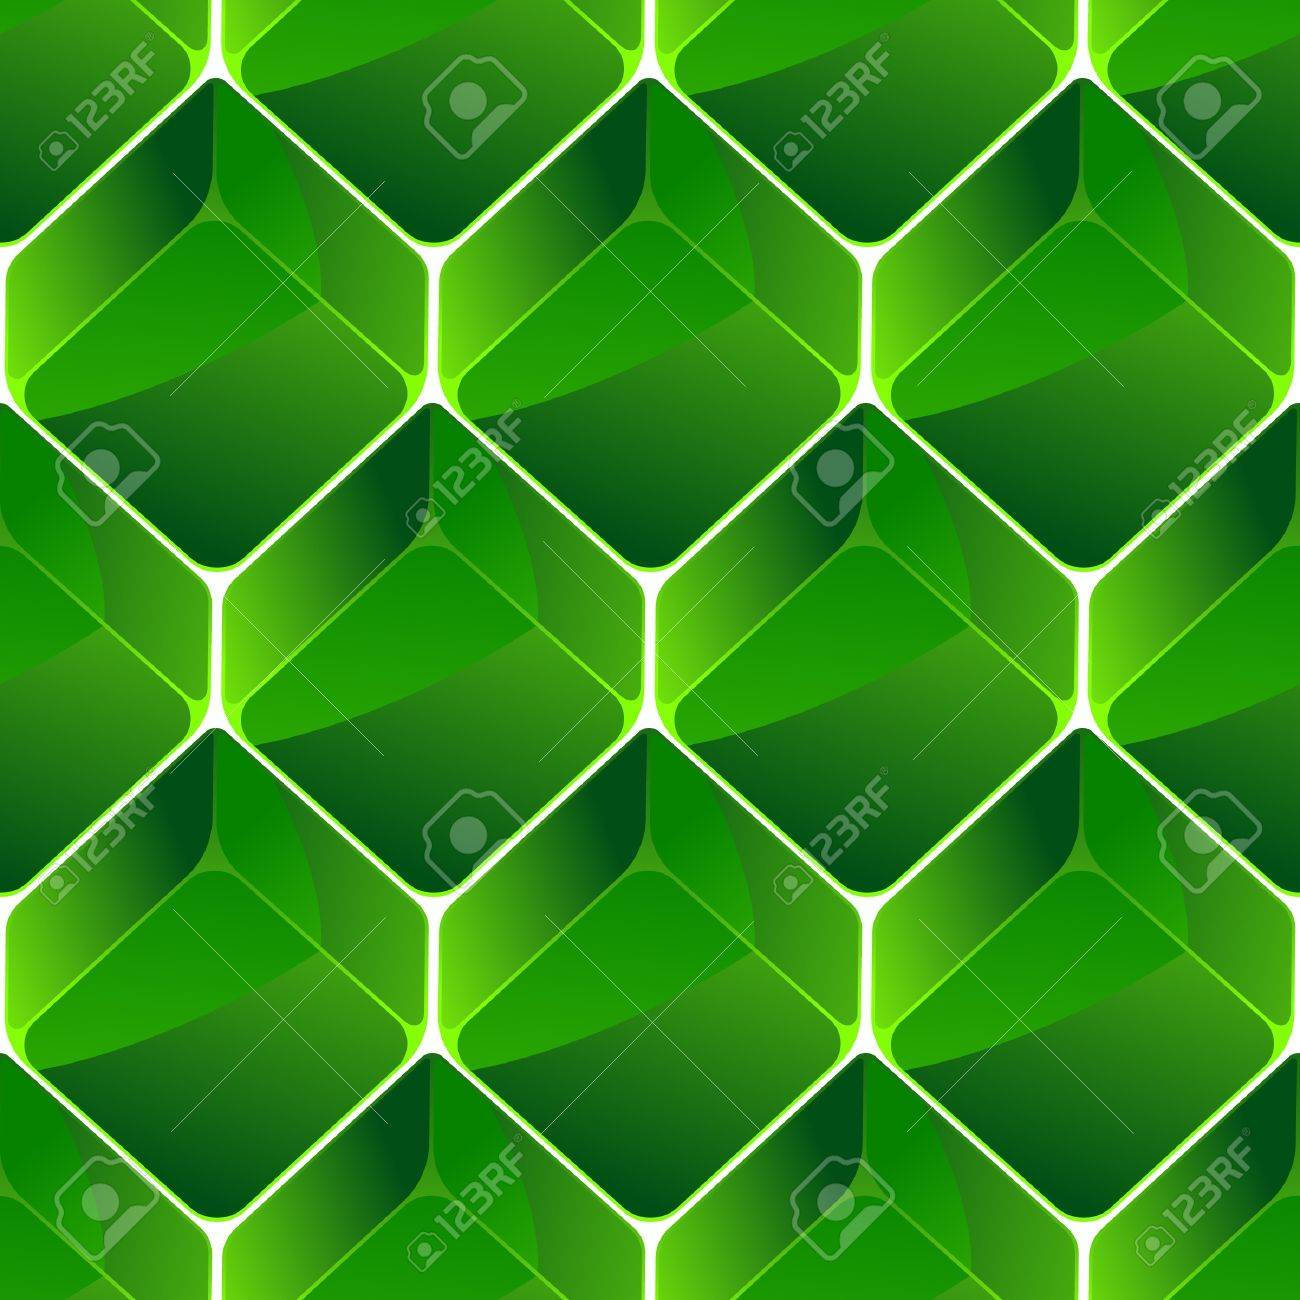 Seamless background with green blocks. Stock Vector - 9644744